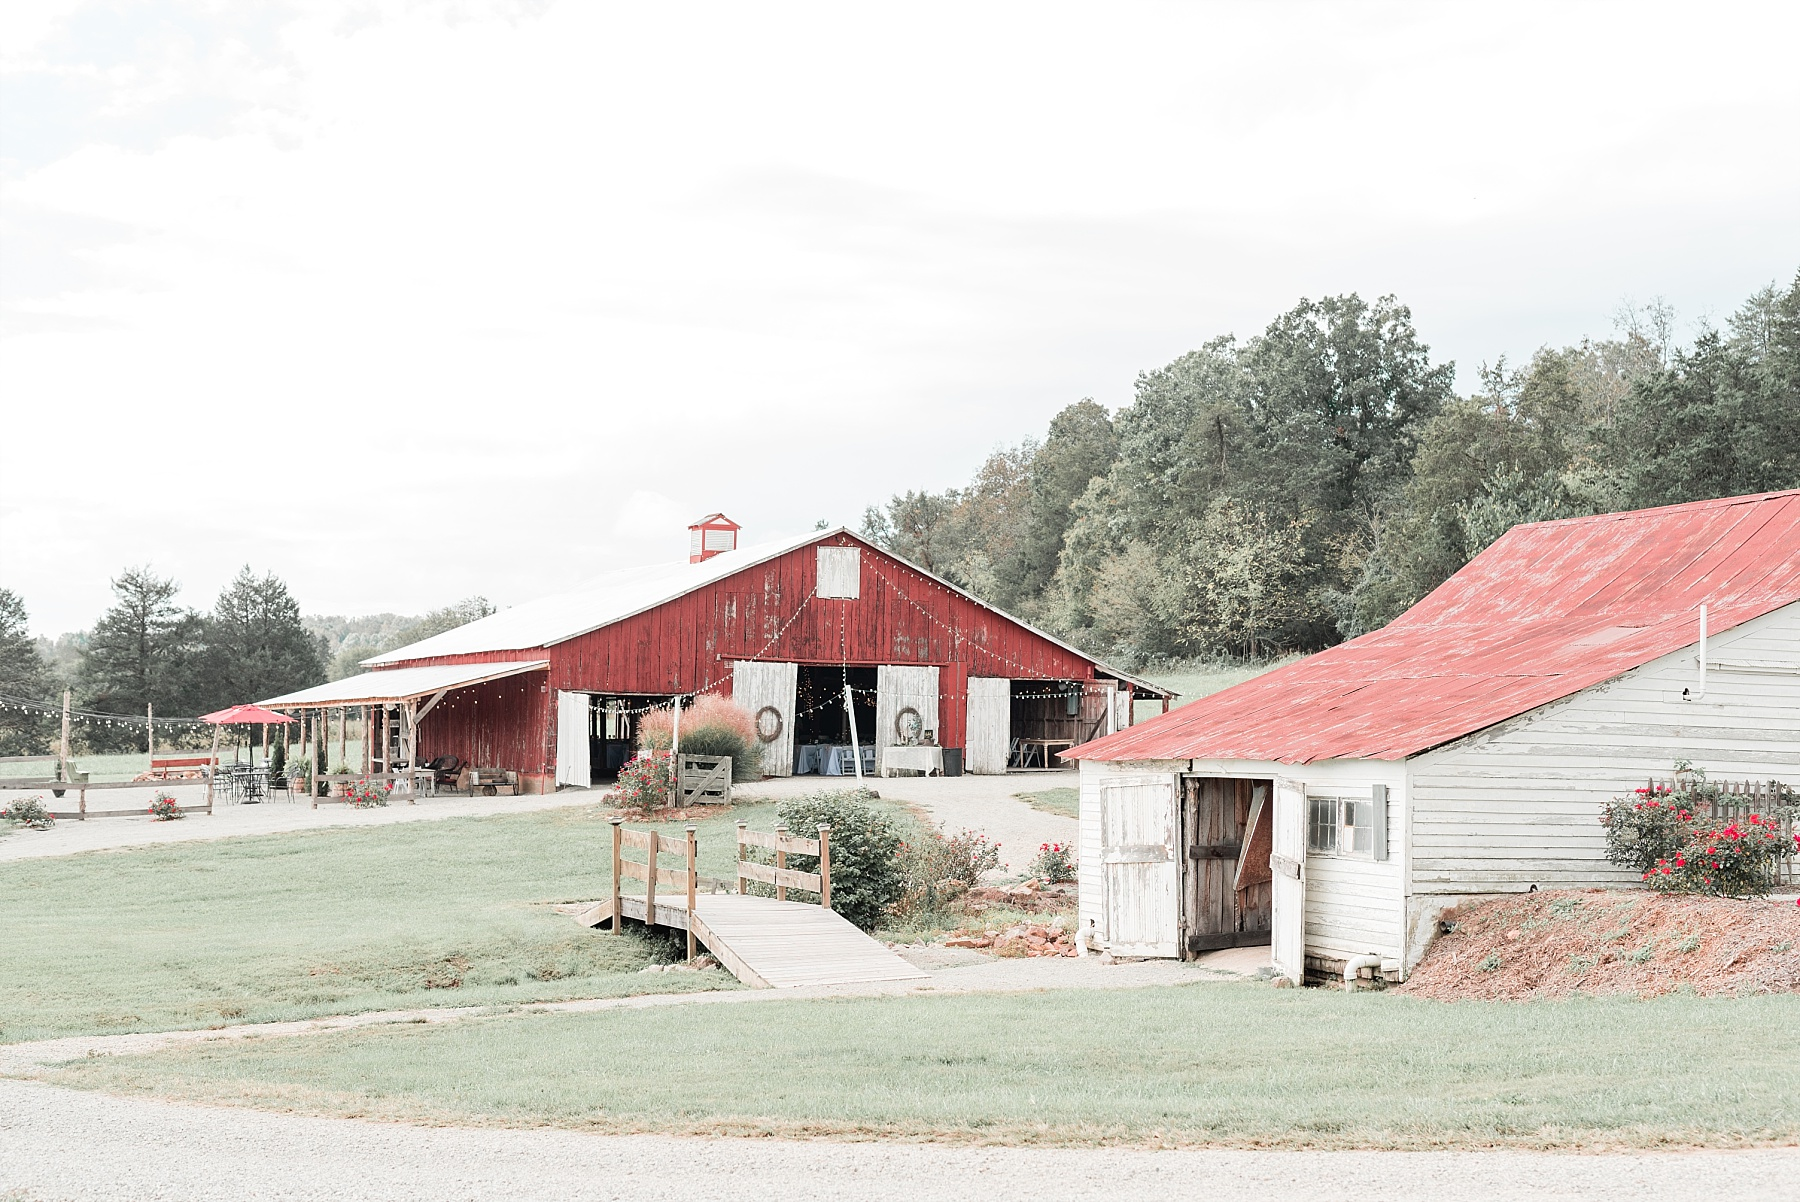 Fine Art Sunset Themed Wedding in Autumn at Dodson Orchards by Kelsi Kliethermes Photography_0001.jpg